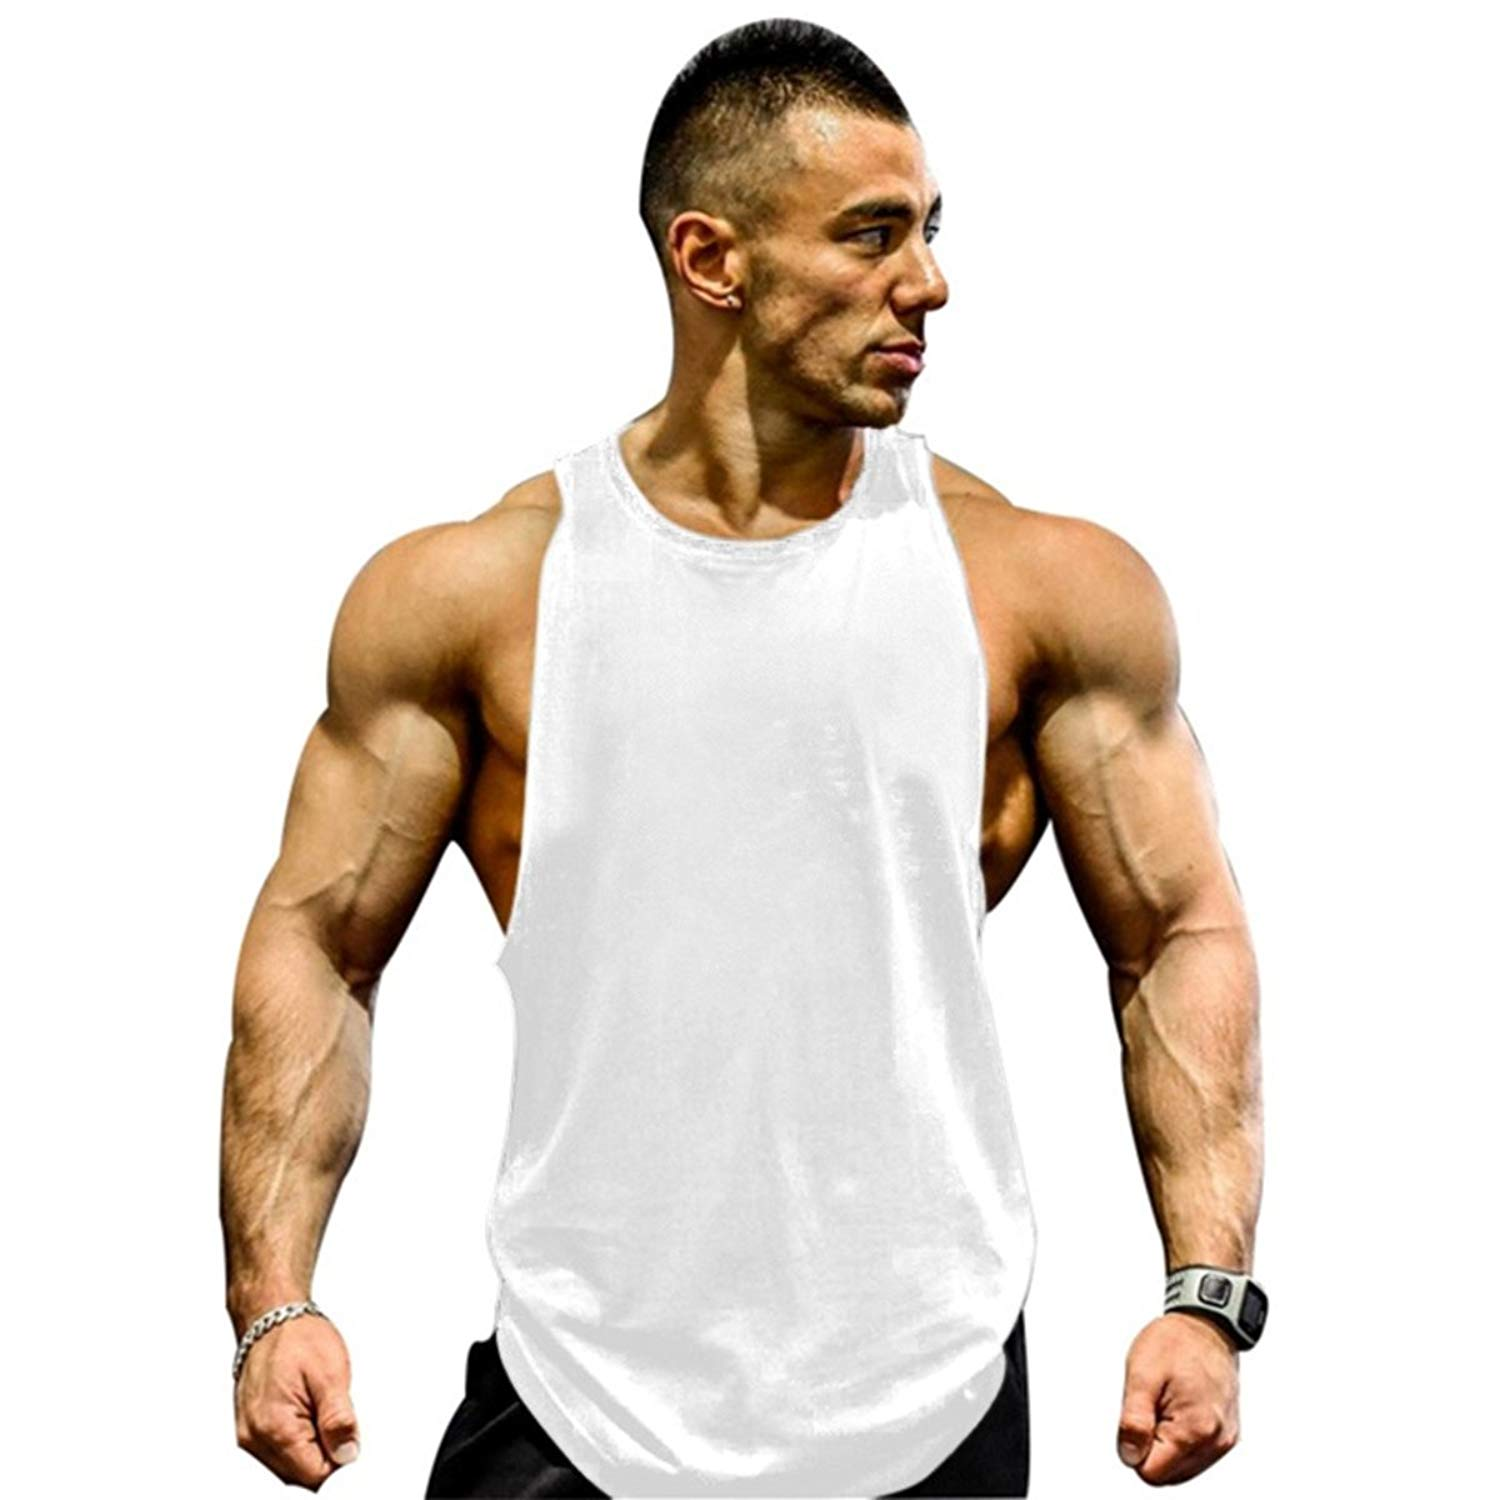 0536139d5cc Get Quotations · Muscle Killer Mens Gym Tank Tops Muscle Cut Stringer  Bodybuilding Workout Sleeveless Gym Shirts